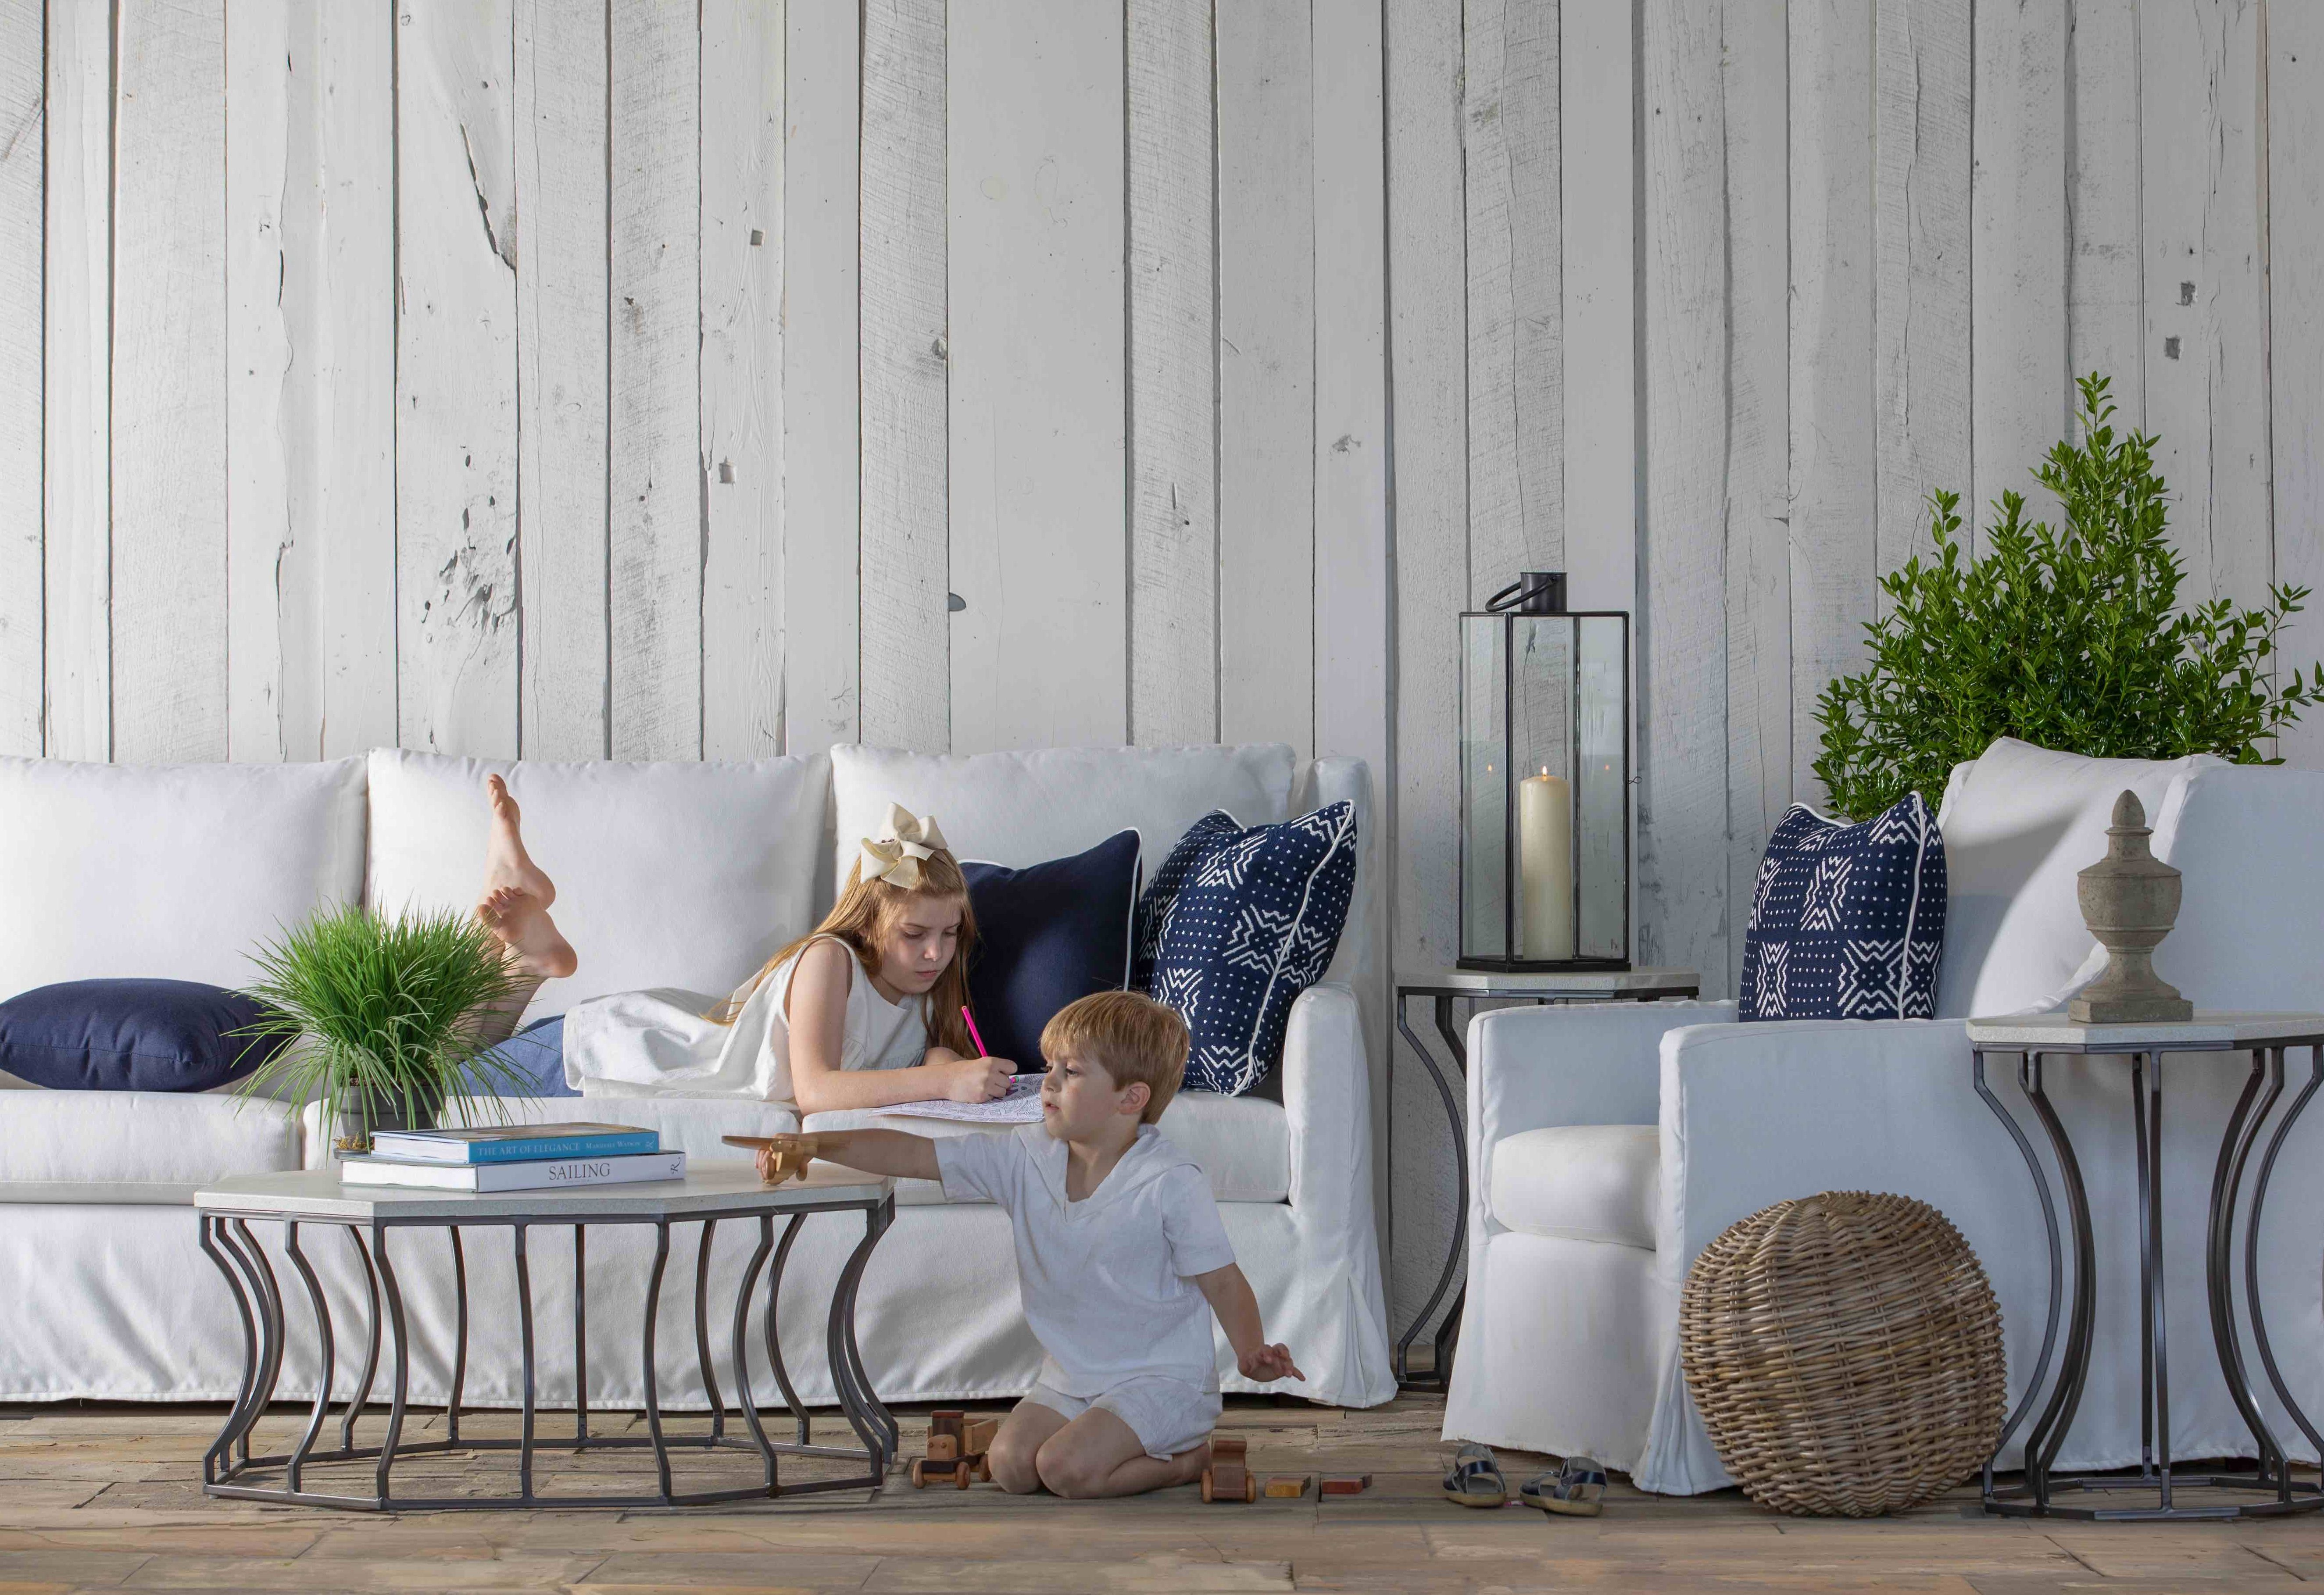 Introducing The New Summer Classics Home Exclusive Outdoor Collection Shelby Brings A Fresh Look To Furniture